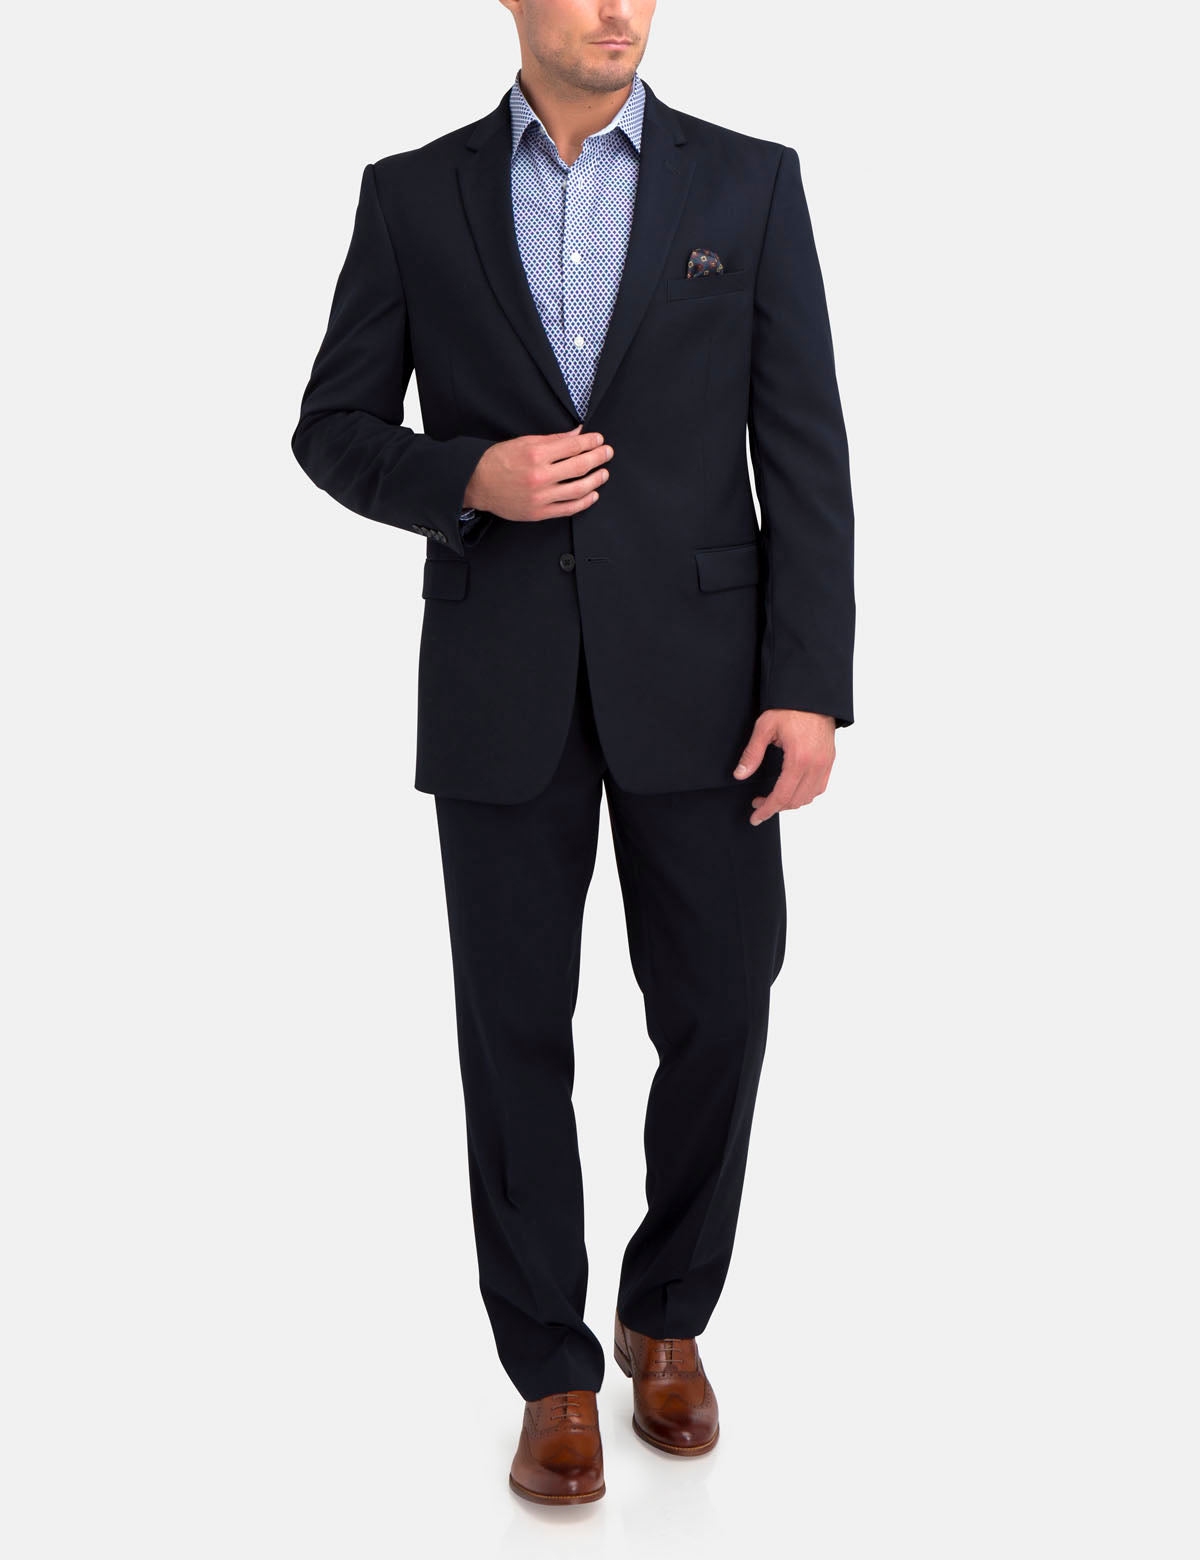 Navy Suit Jacket - U.S. Polo Assn.